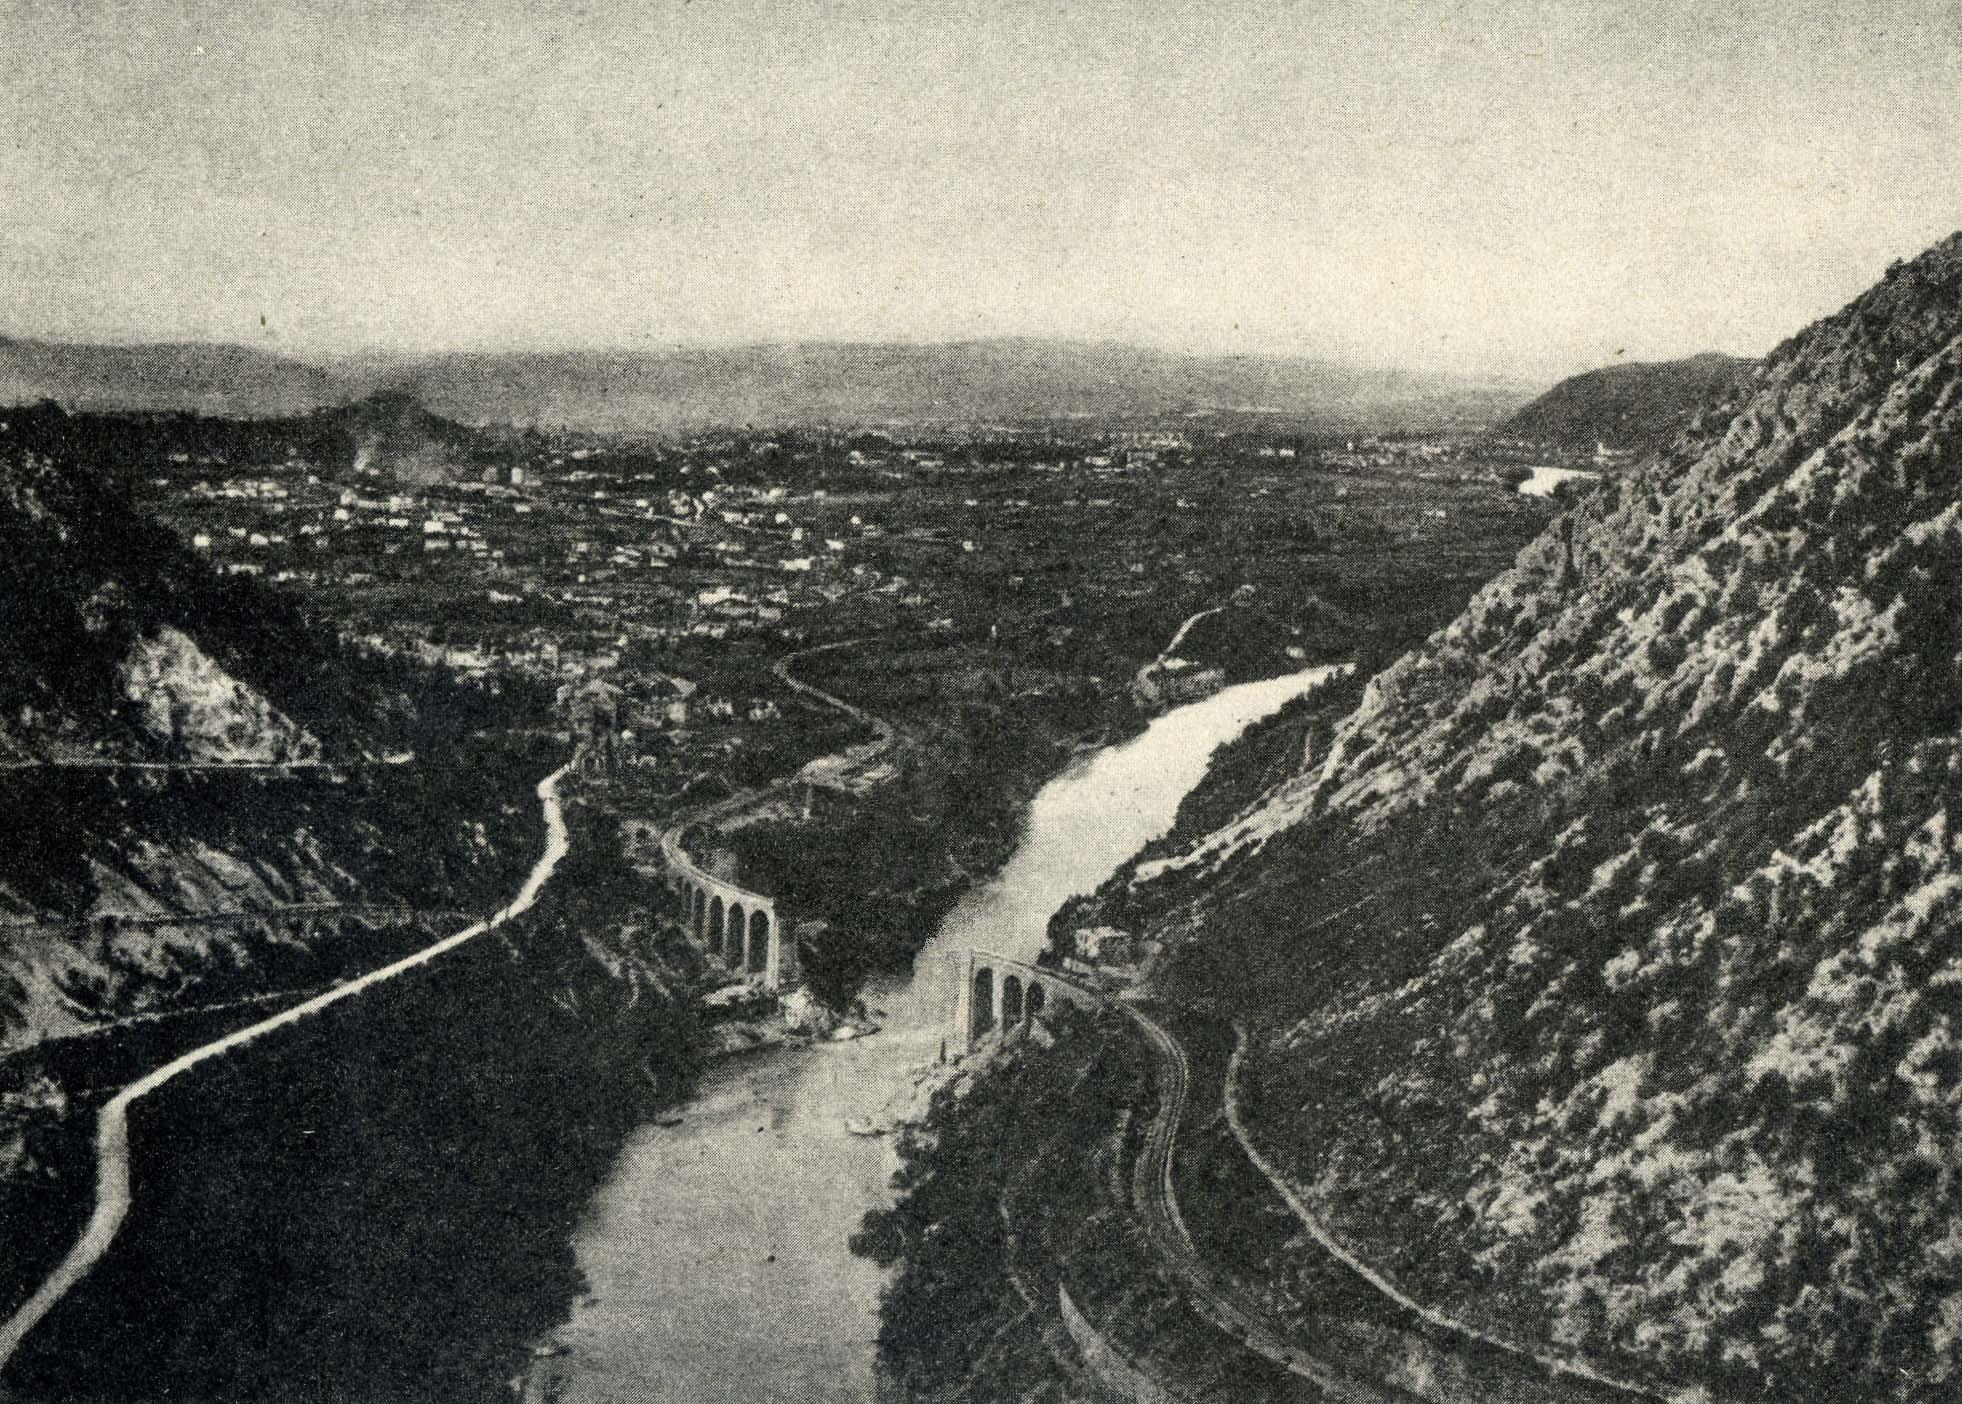 The Isonzo River valley, detonated bridge, date uncertain.